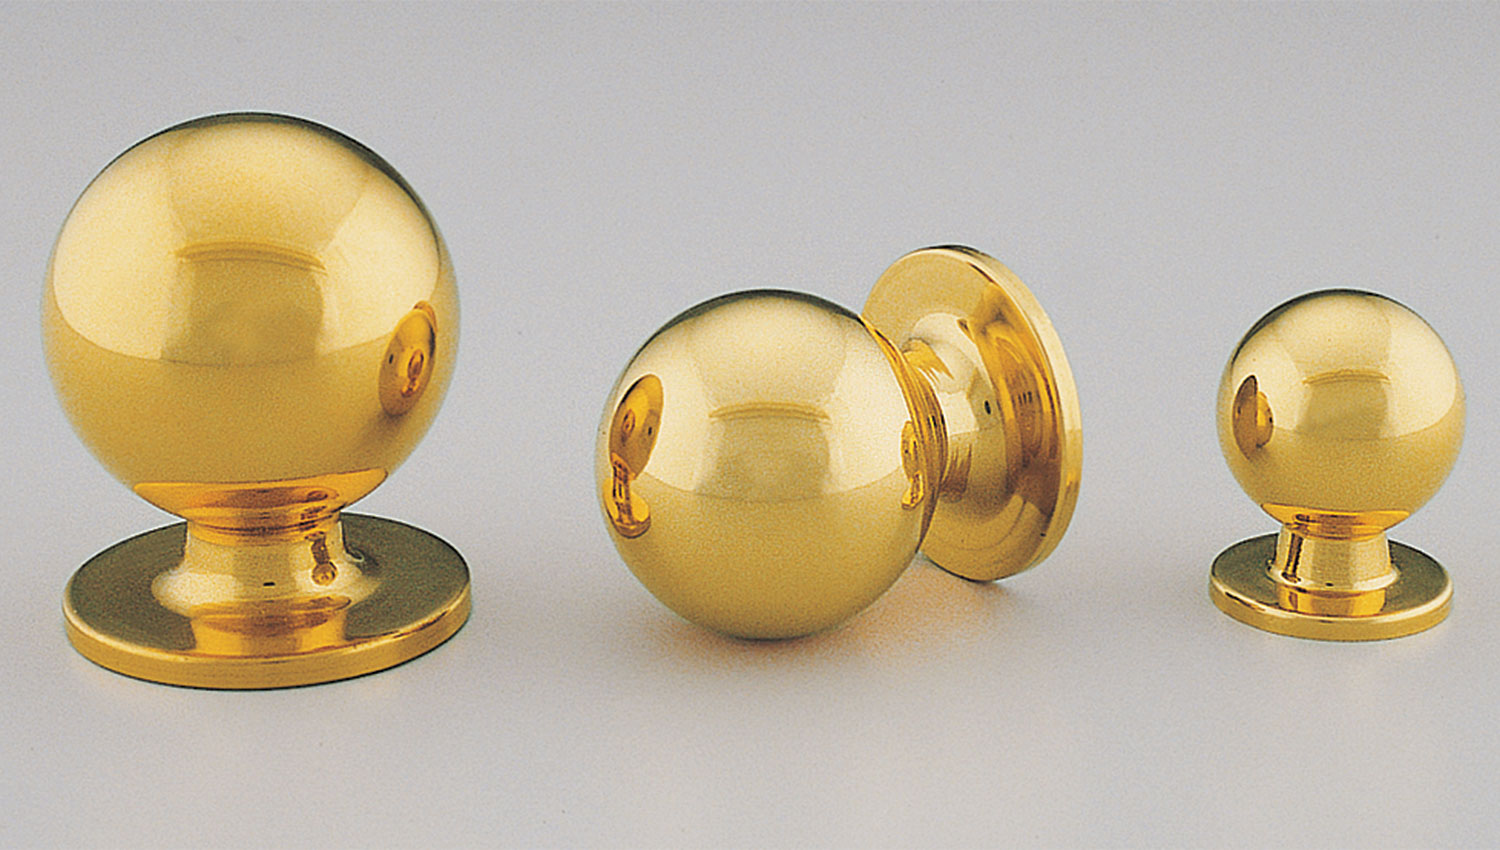 BK35 BULB BRASS BULB round knob spherical ball top : Kethy